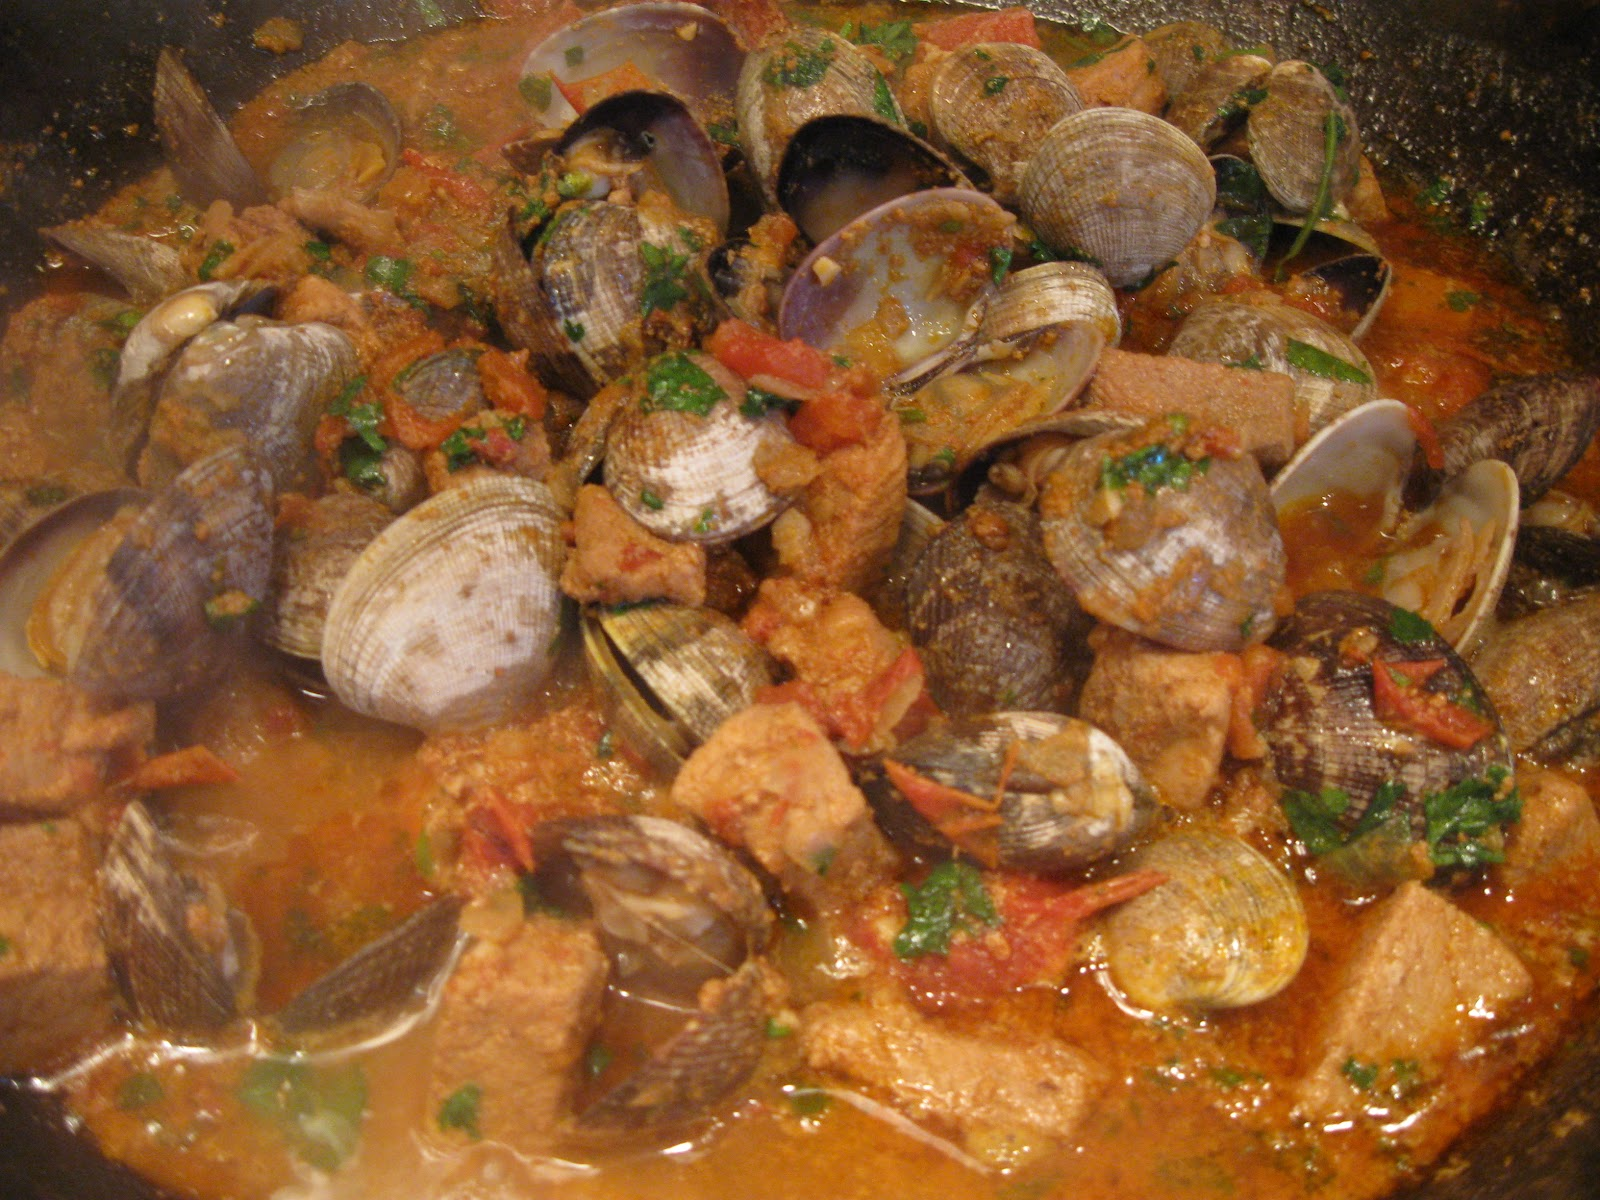 Whole Foods Chopped Clams